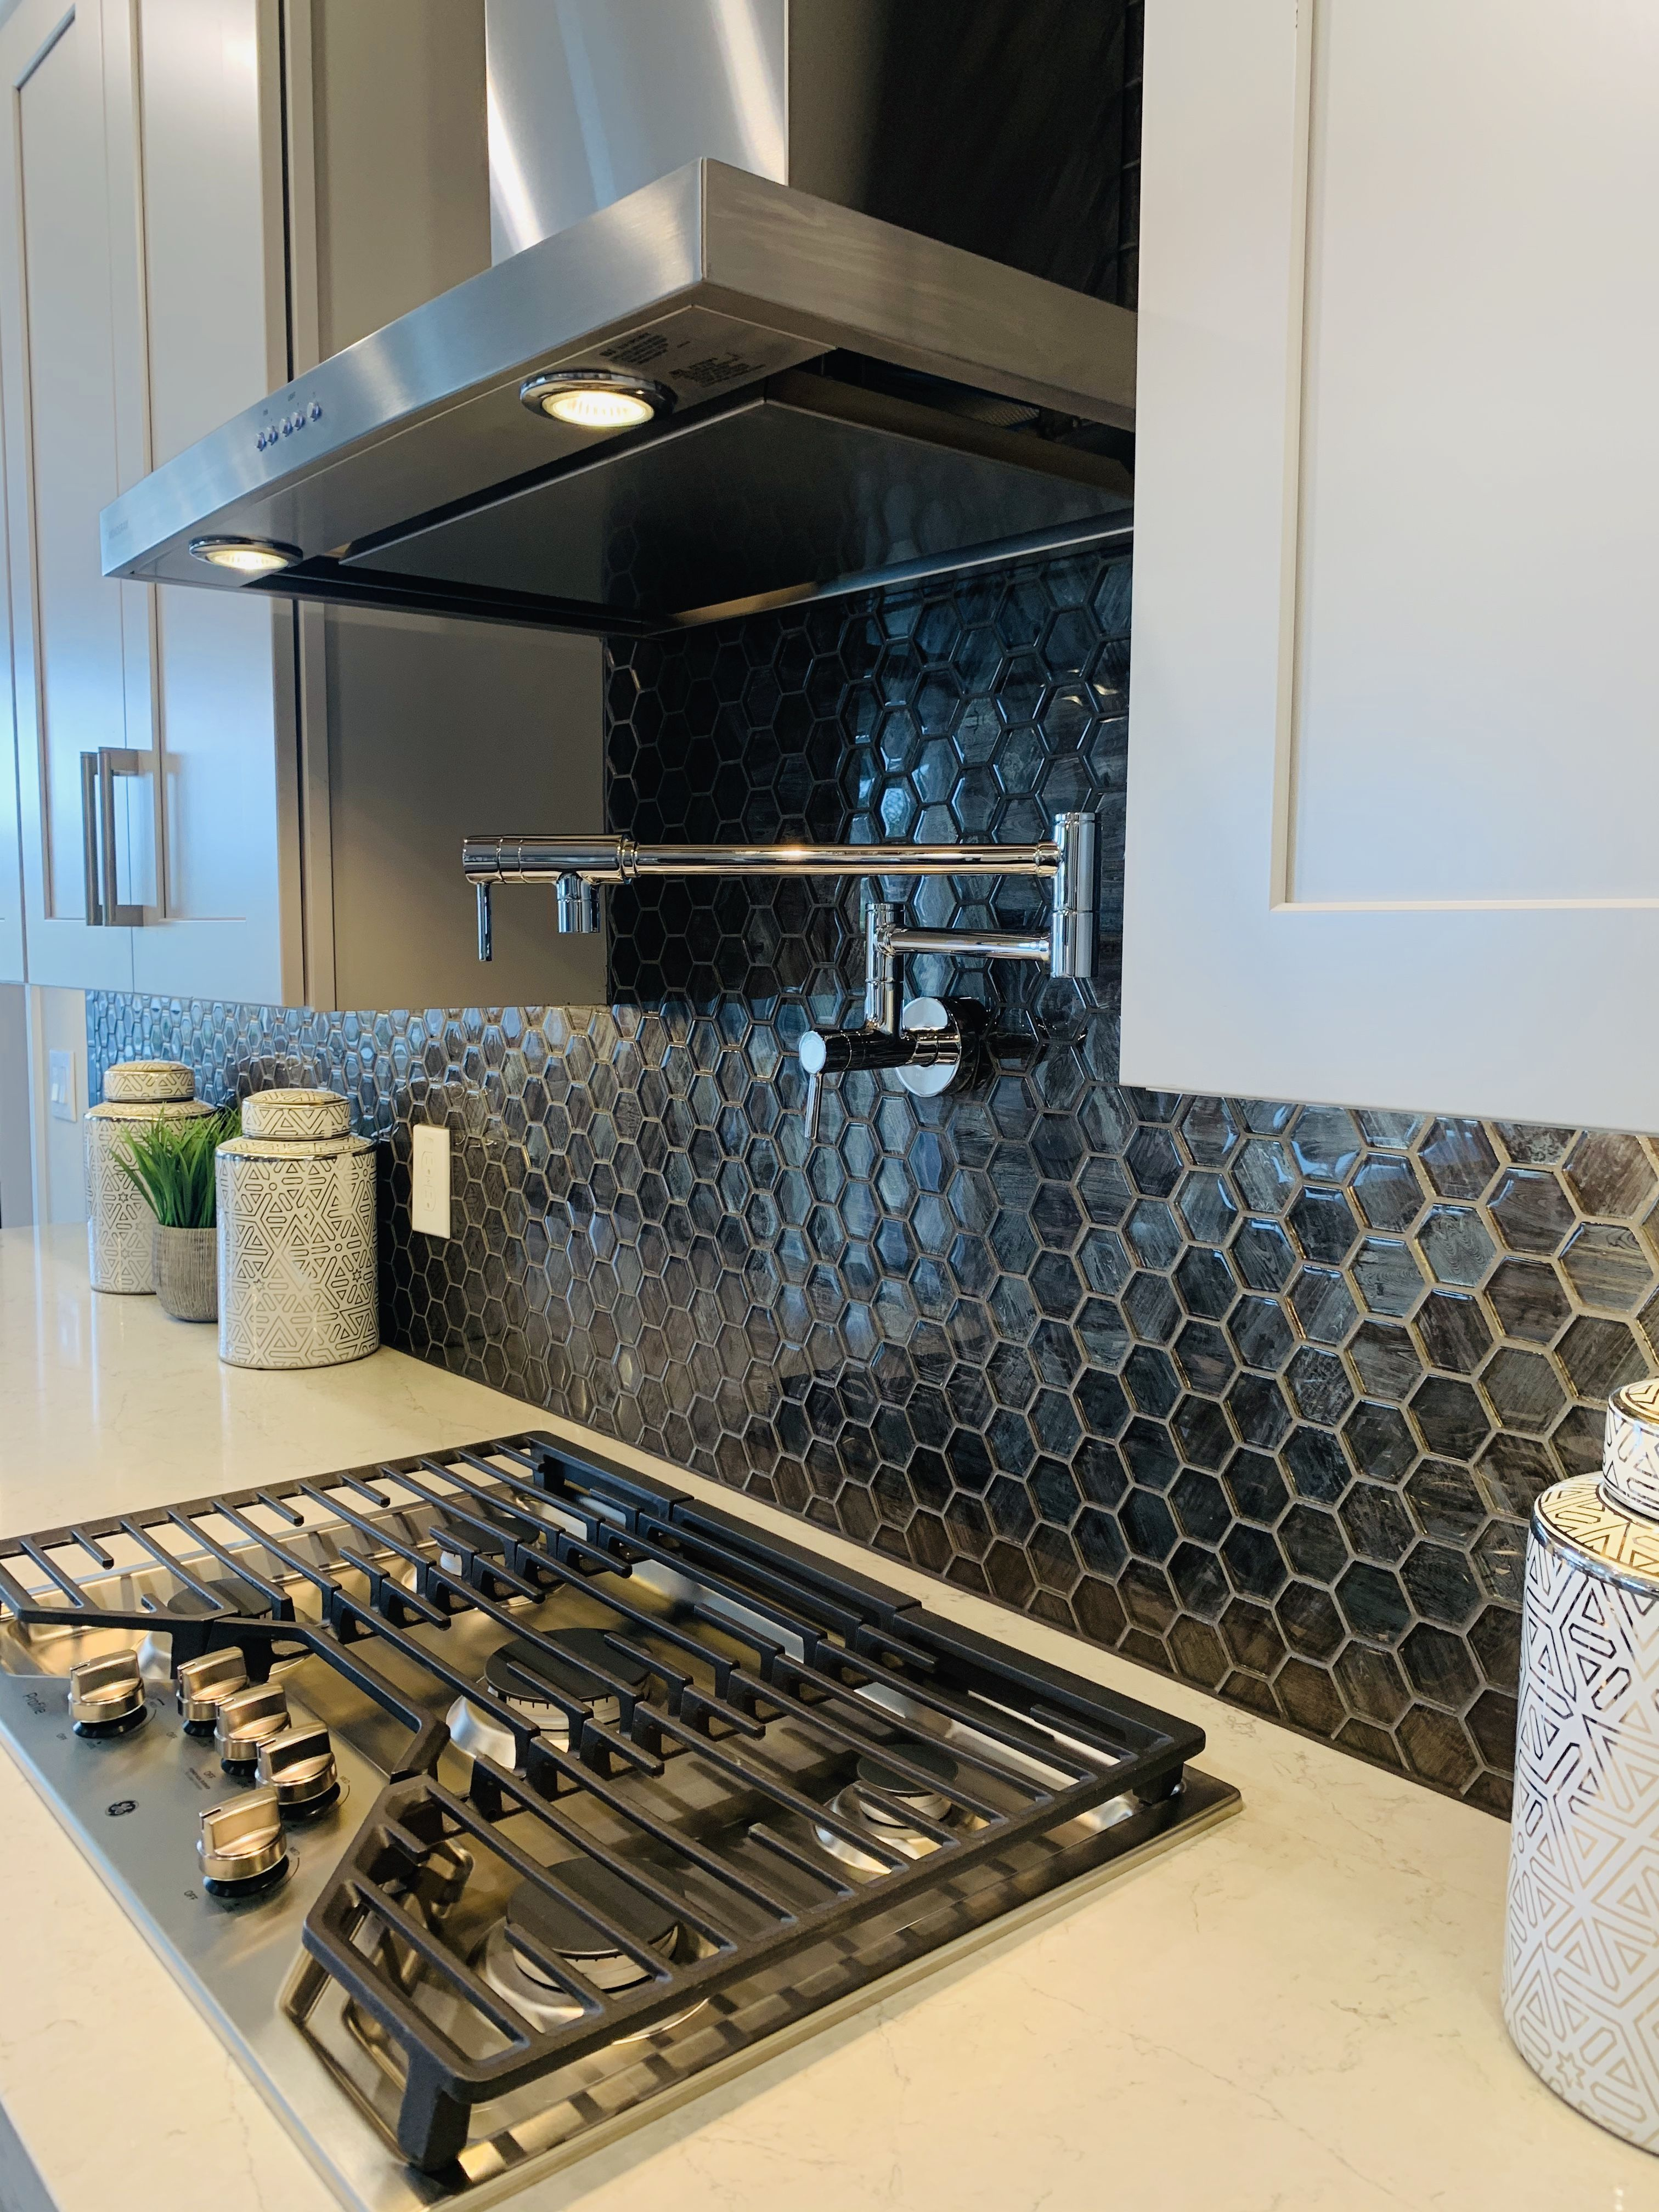 Backsplash Design Hexagon Idea Kitchen Tiles Black Luxury Kitchen Design With Hexagon Tile Bla Luxury Kitchen Design Hexagon Backsplash Backsplash Designs